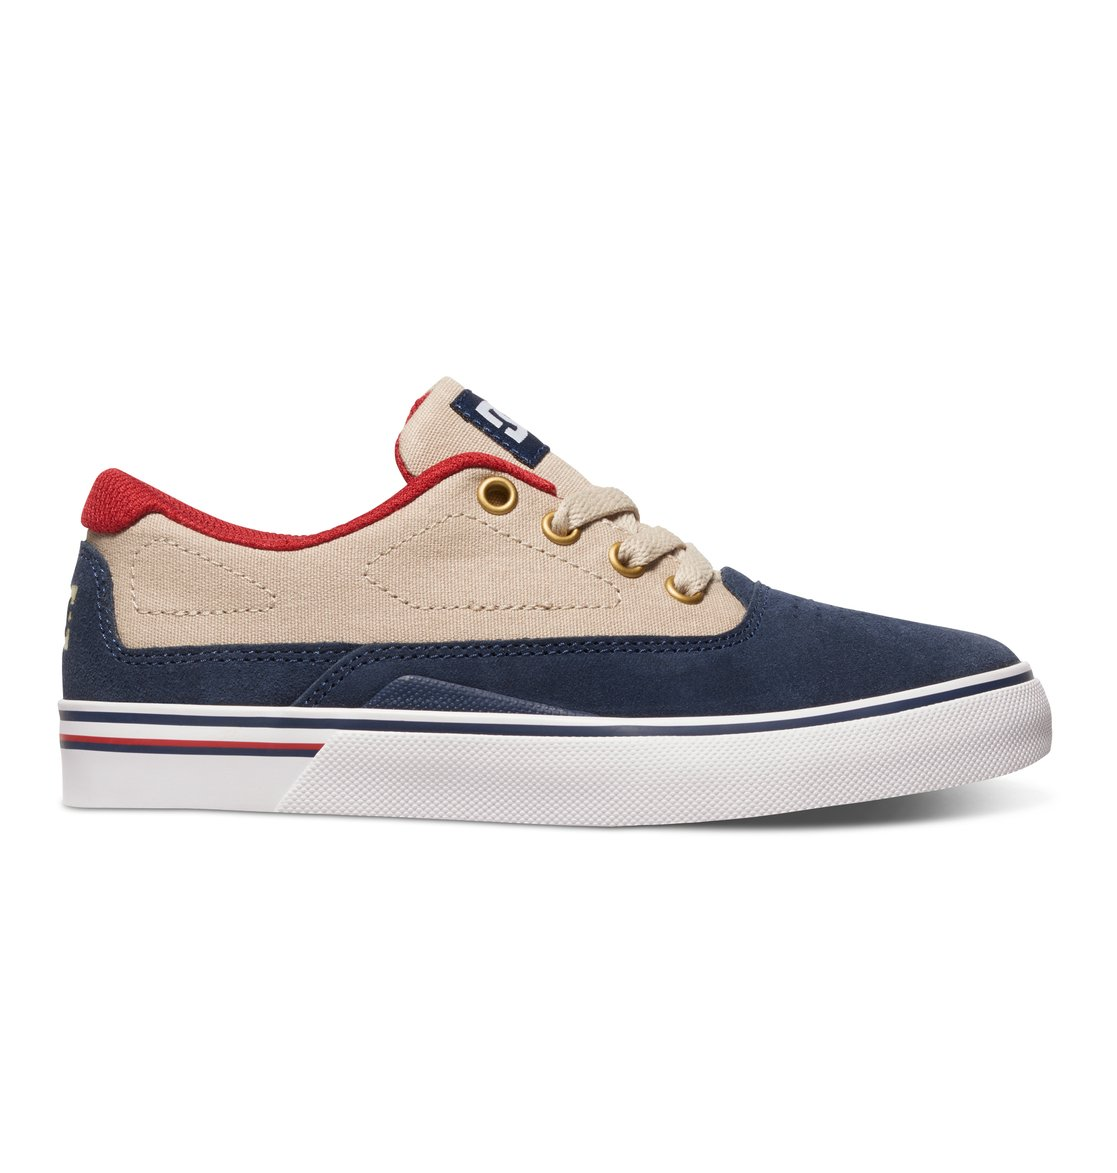 Kids' shoes: Awesome sneakers for the playground These popular sneakers are sure to be a hit in the schoolyard. Your kids will never want to take them off.